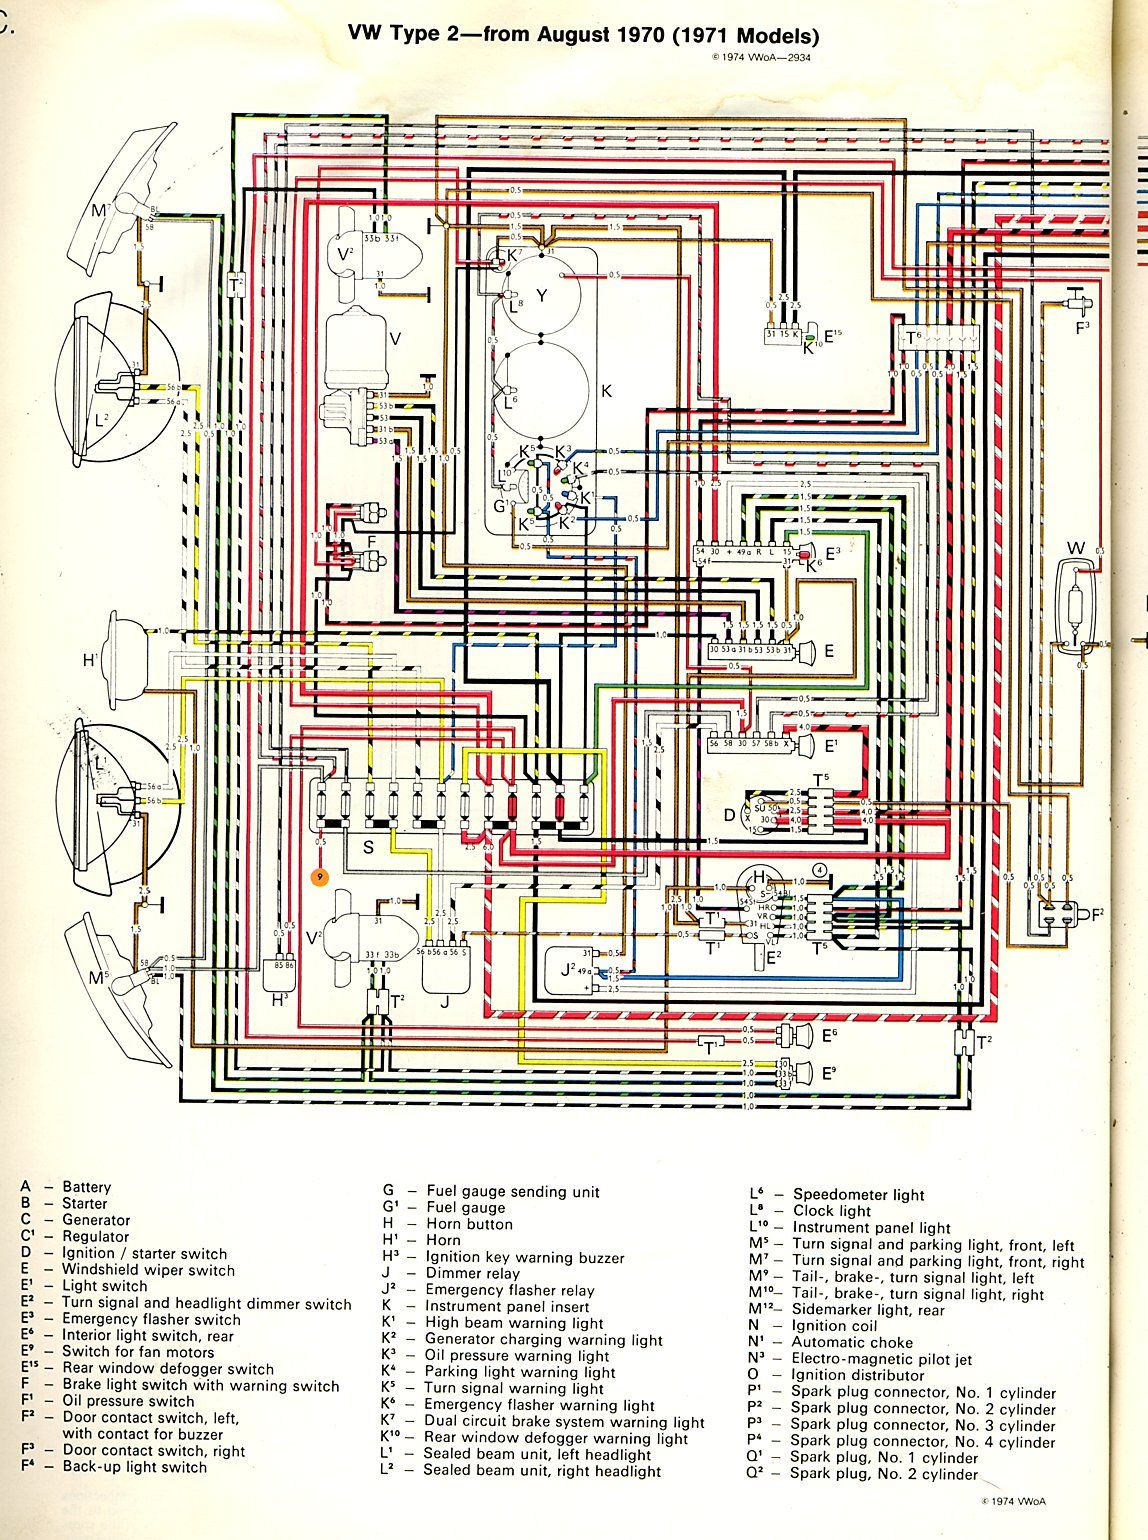 26730f3f6ceb3f1e1b50646c57249616 1971 bus wiring diagram thegoldenbug com stuff to try 1970 vw beetle wiring diagram at panicattacktreatment.co